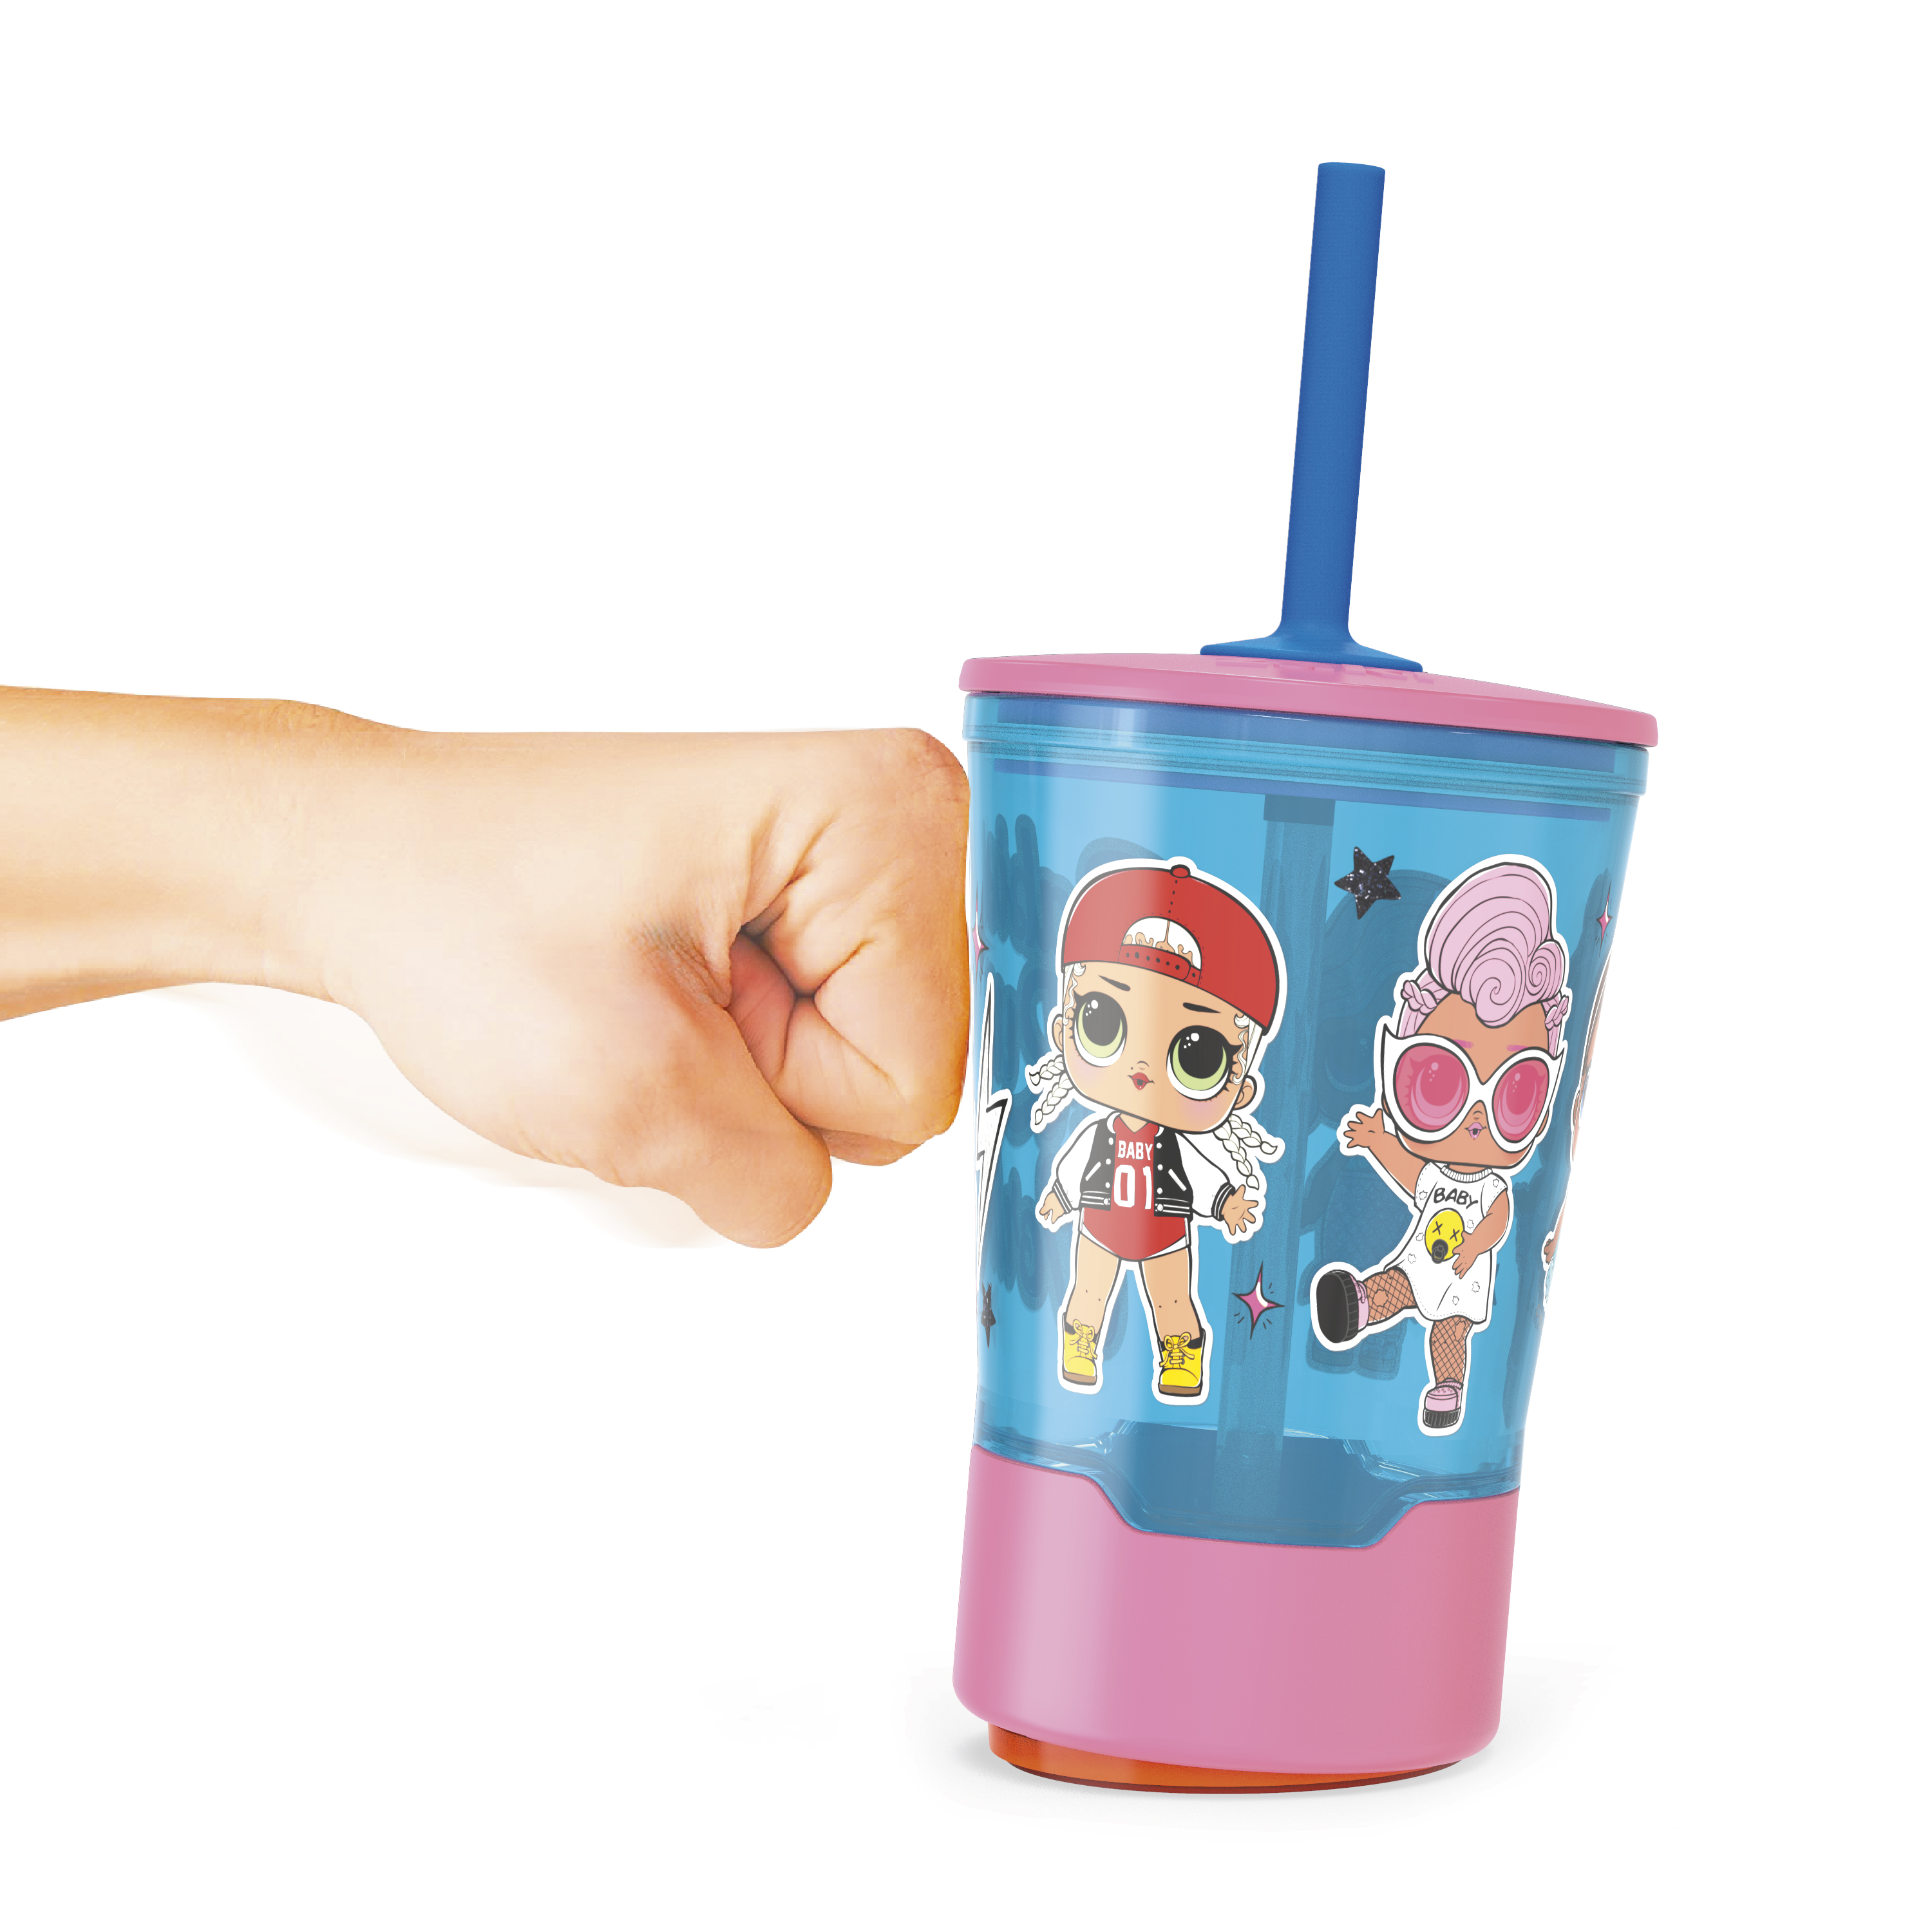 LOL Surprise 16 ounce Mighty Mug Tumbler with Straw, Babies Run the World image